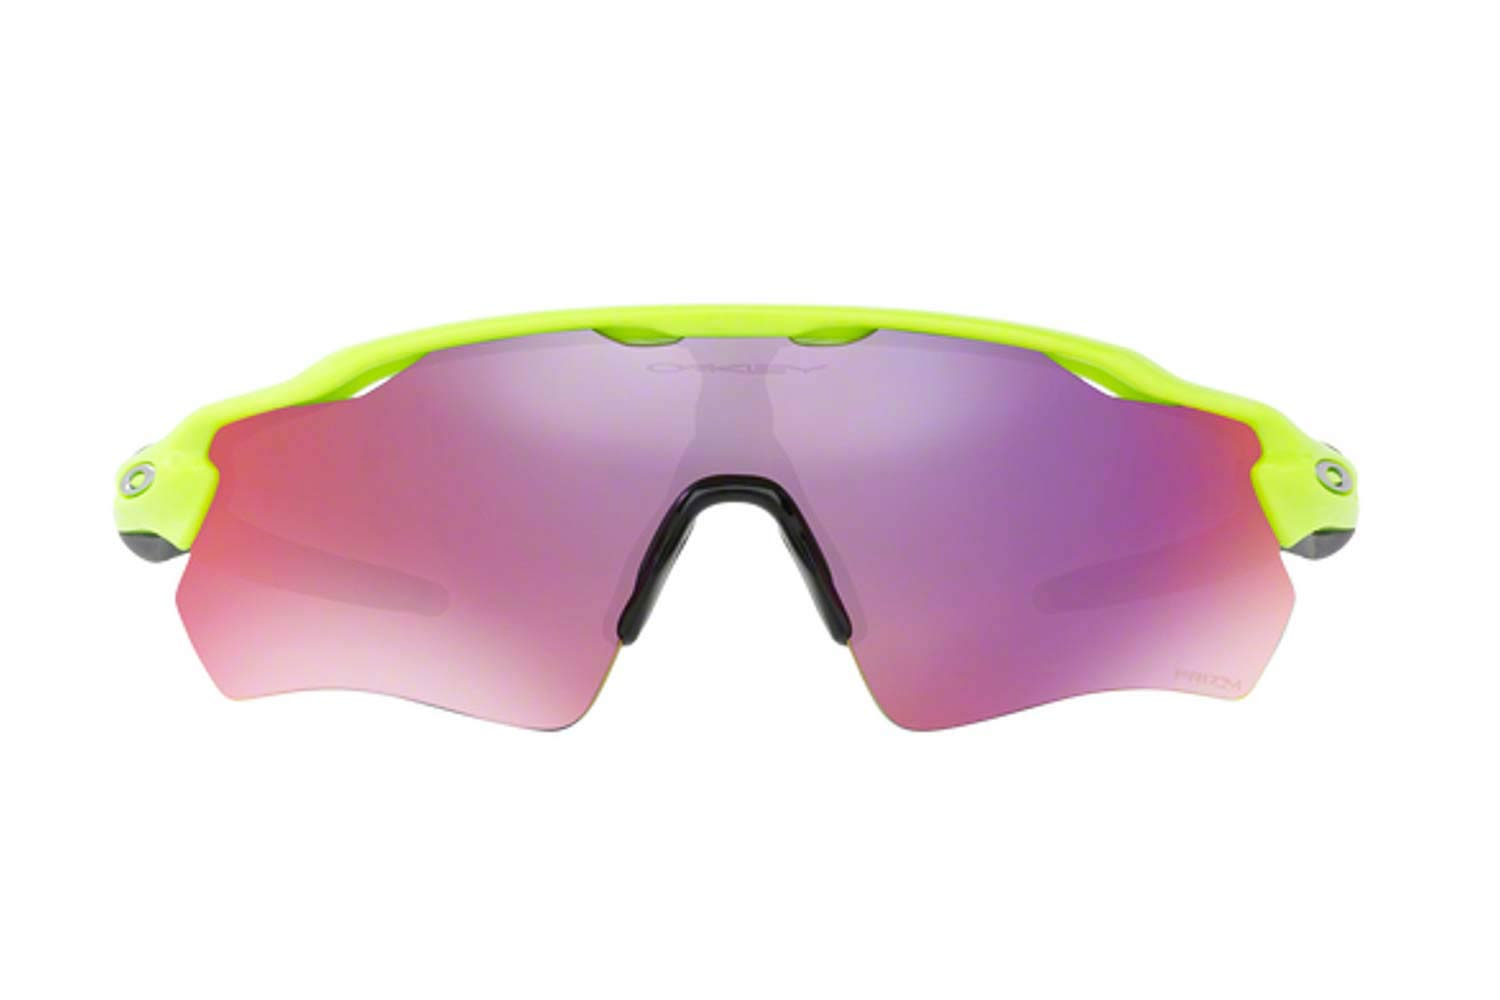 62b8704daf1 SUNGLASSES Oakley RADAR EV PATH 9208 49 Retina Burn Prizm Road. Oakley  RADAR EV PATH 9208